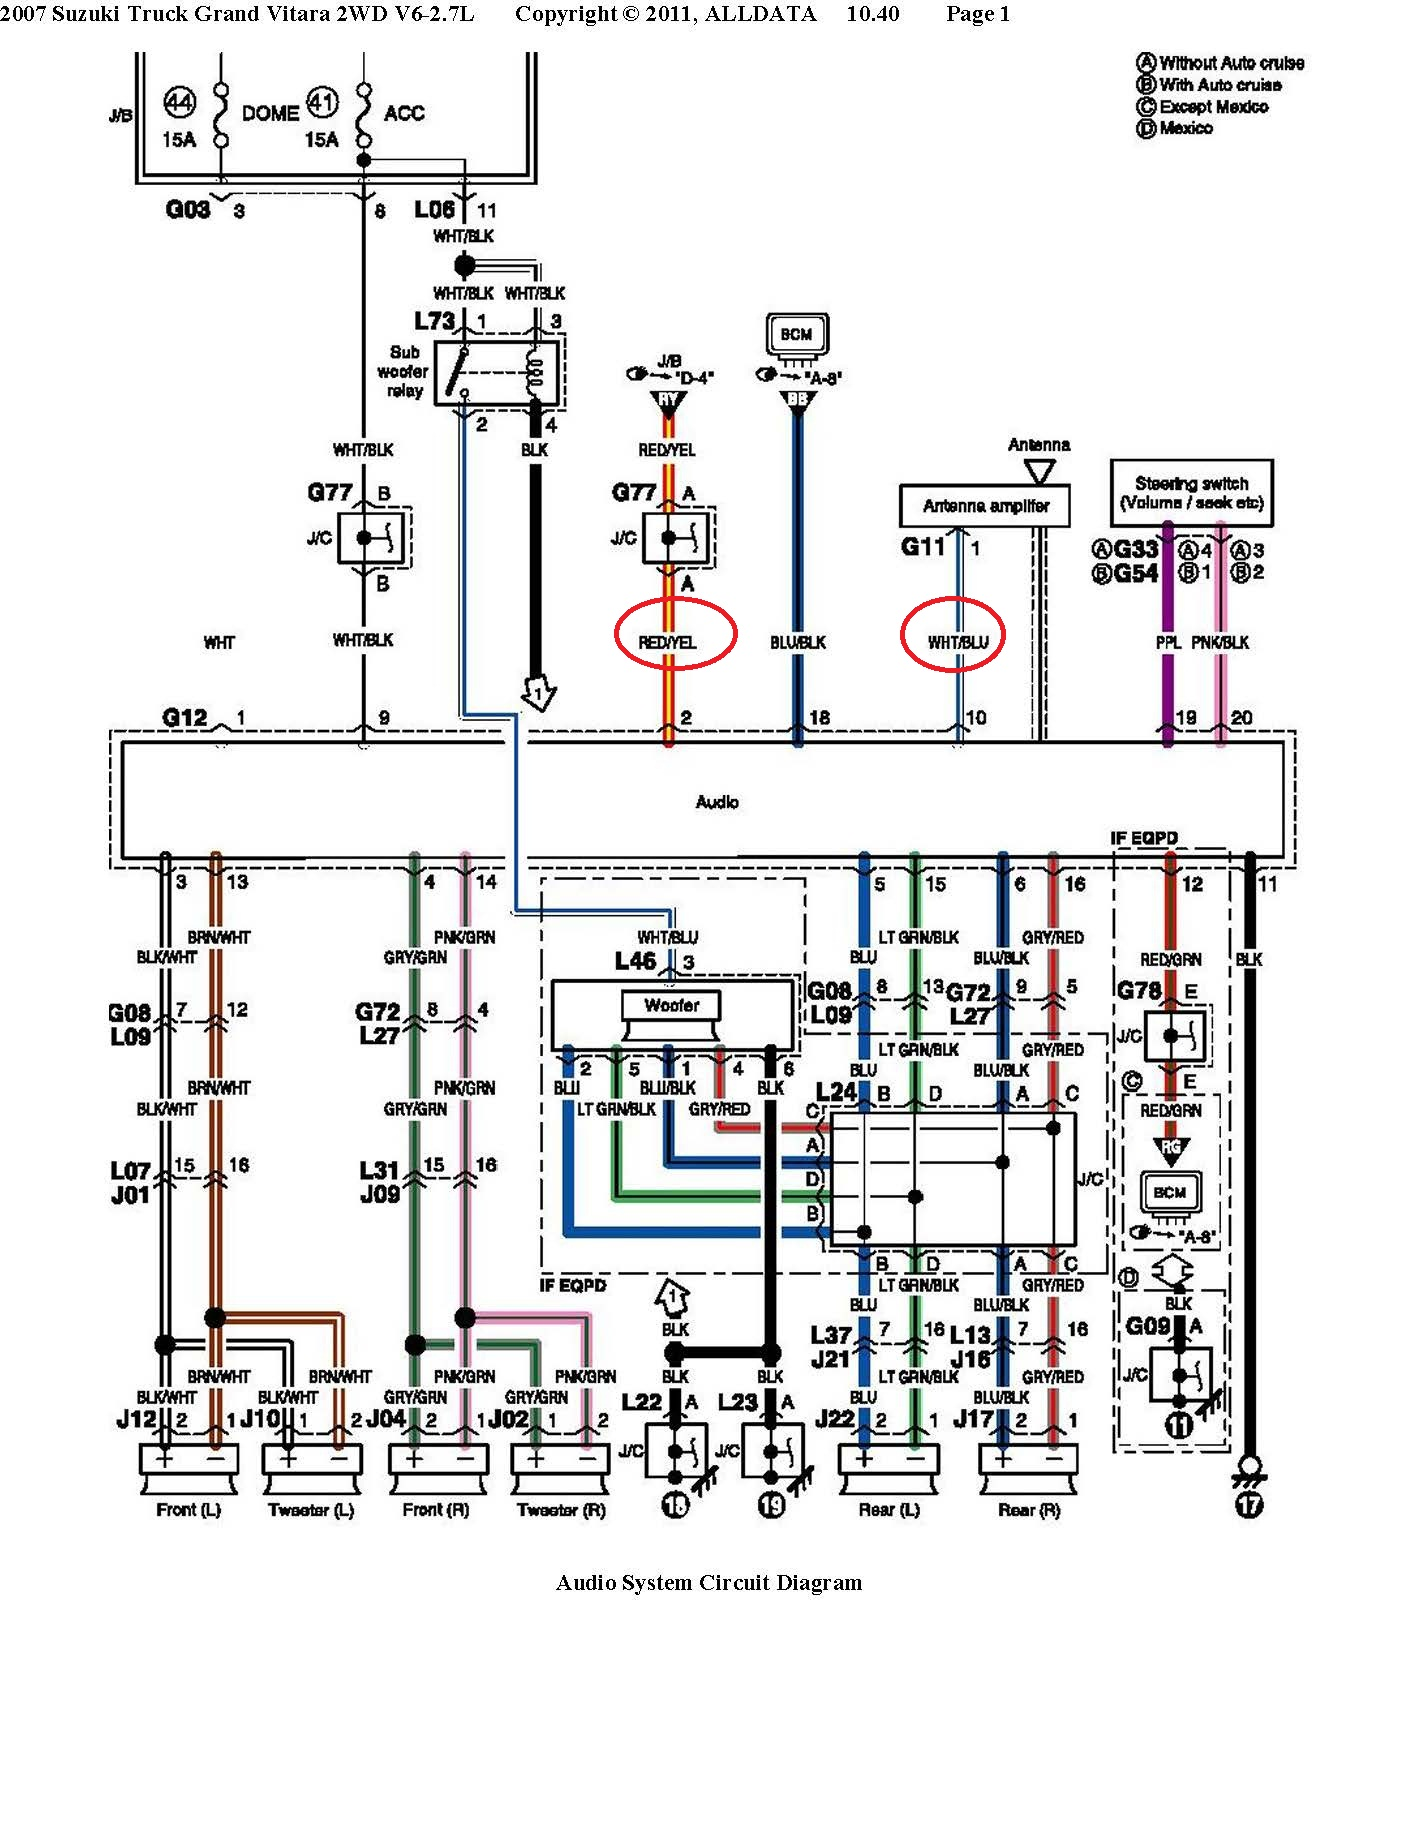 suzuki car radio stereo audio wiring diagram autoradio connector Suzuki Electrical Schematics